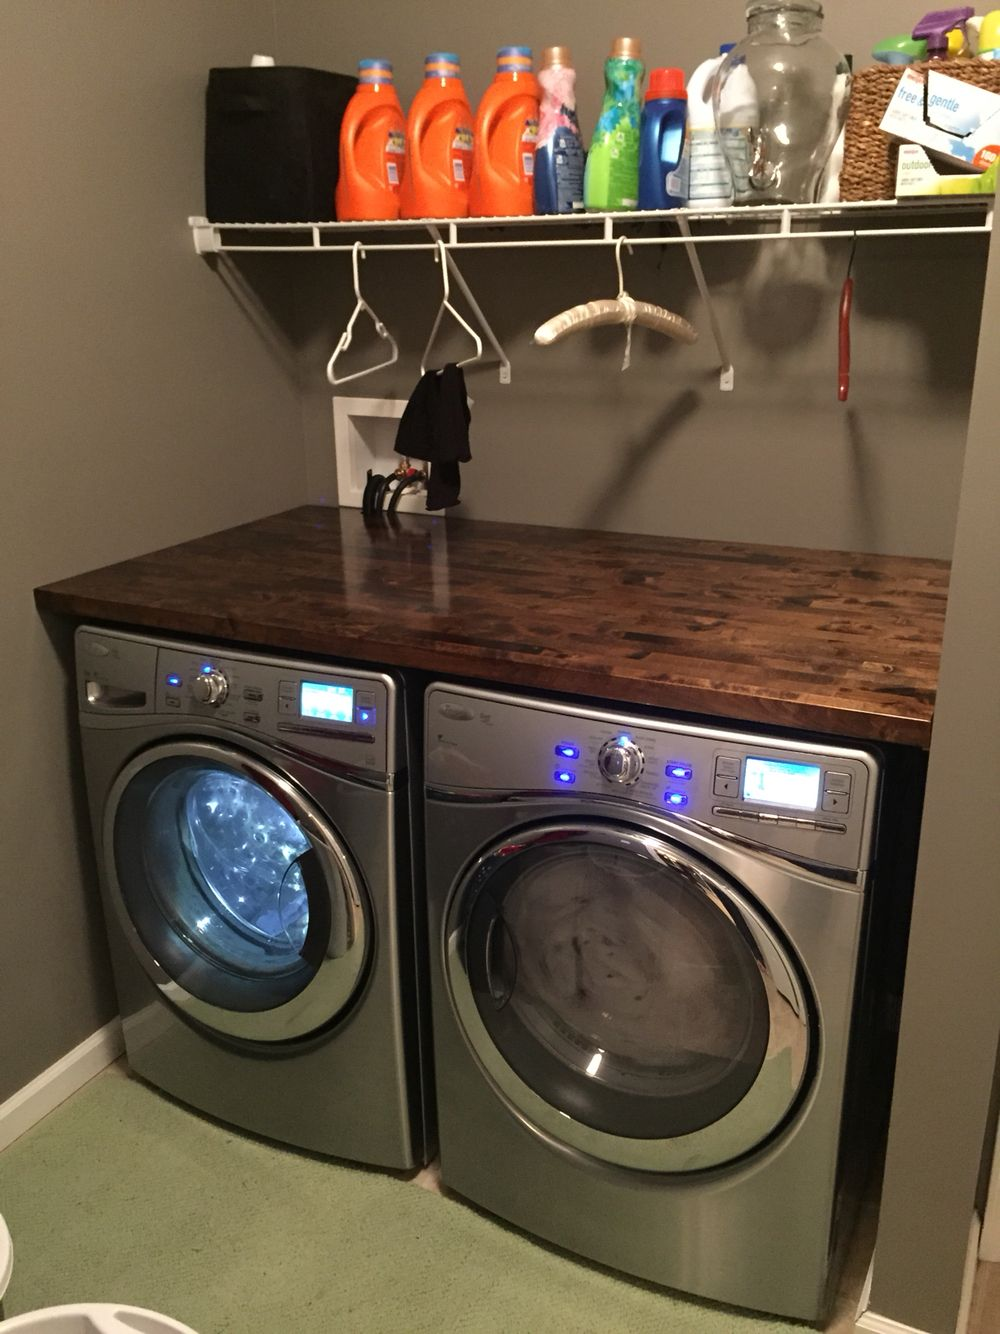 New Washer And Dryer Just Finished Installing Our New Whirlpool Front Load Washer And